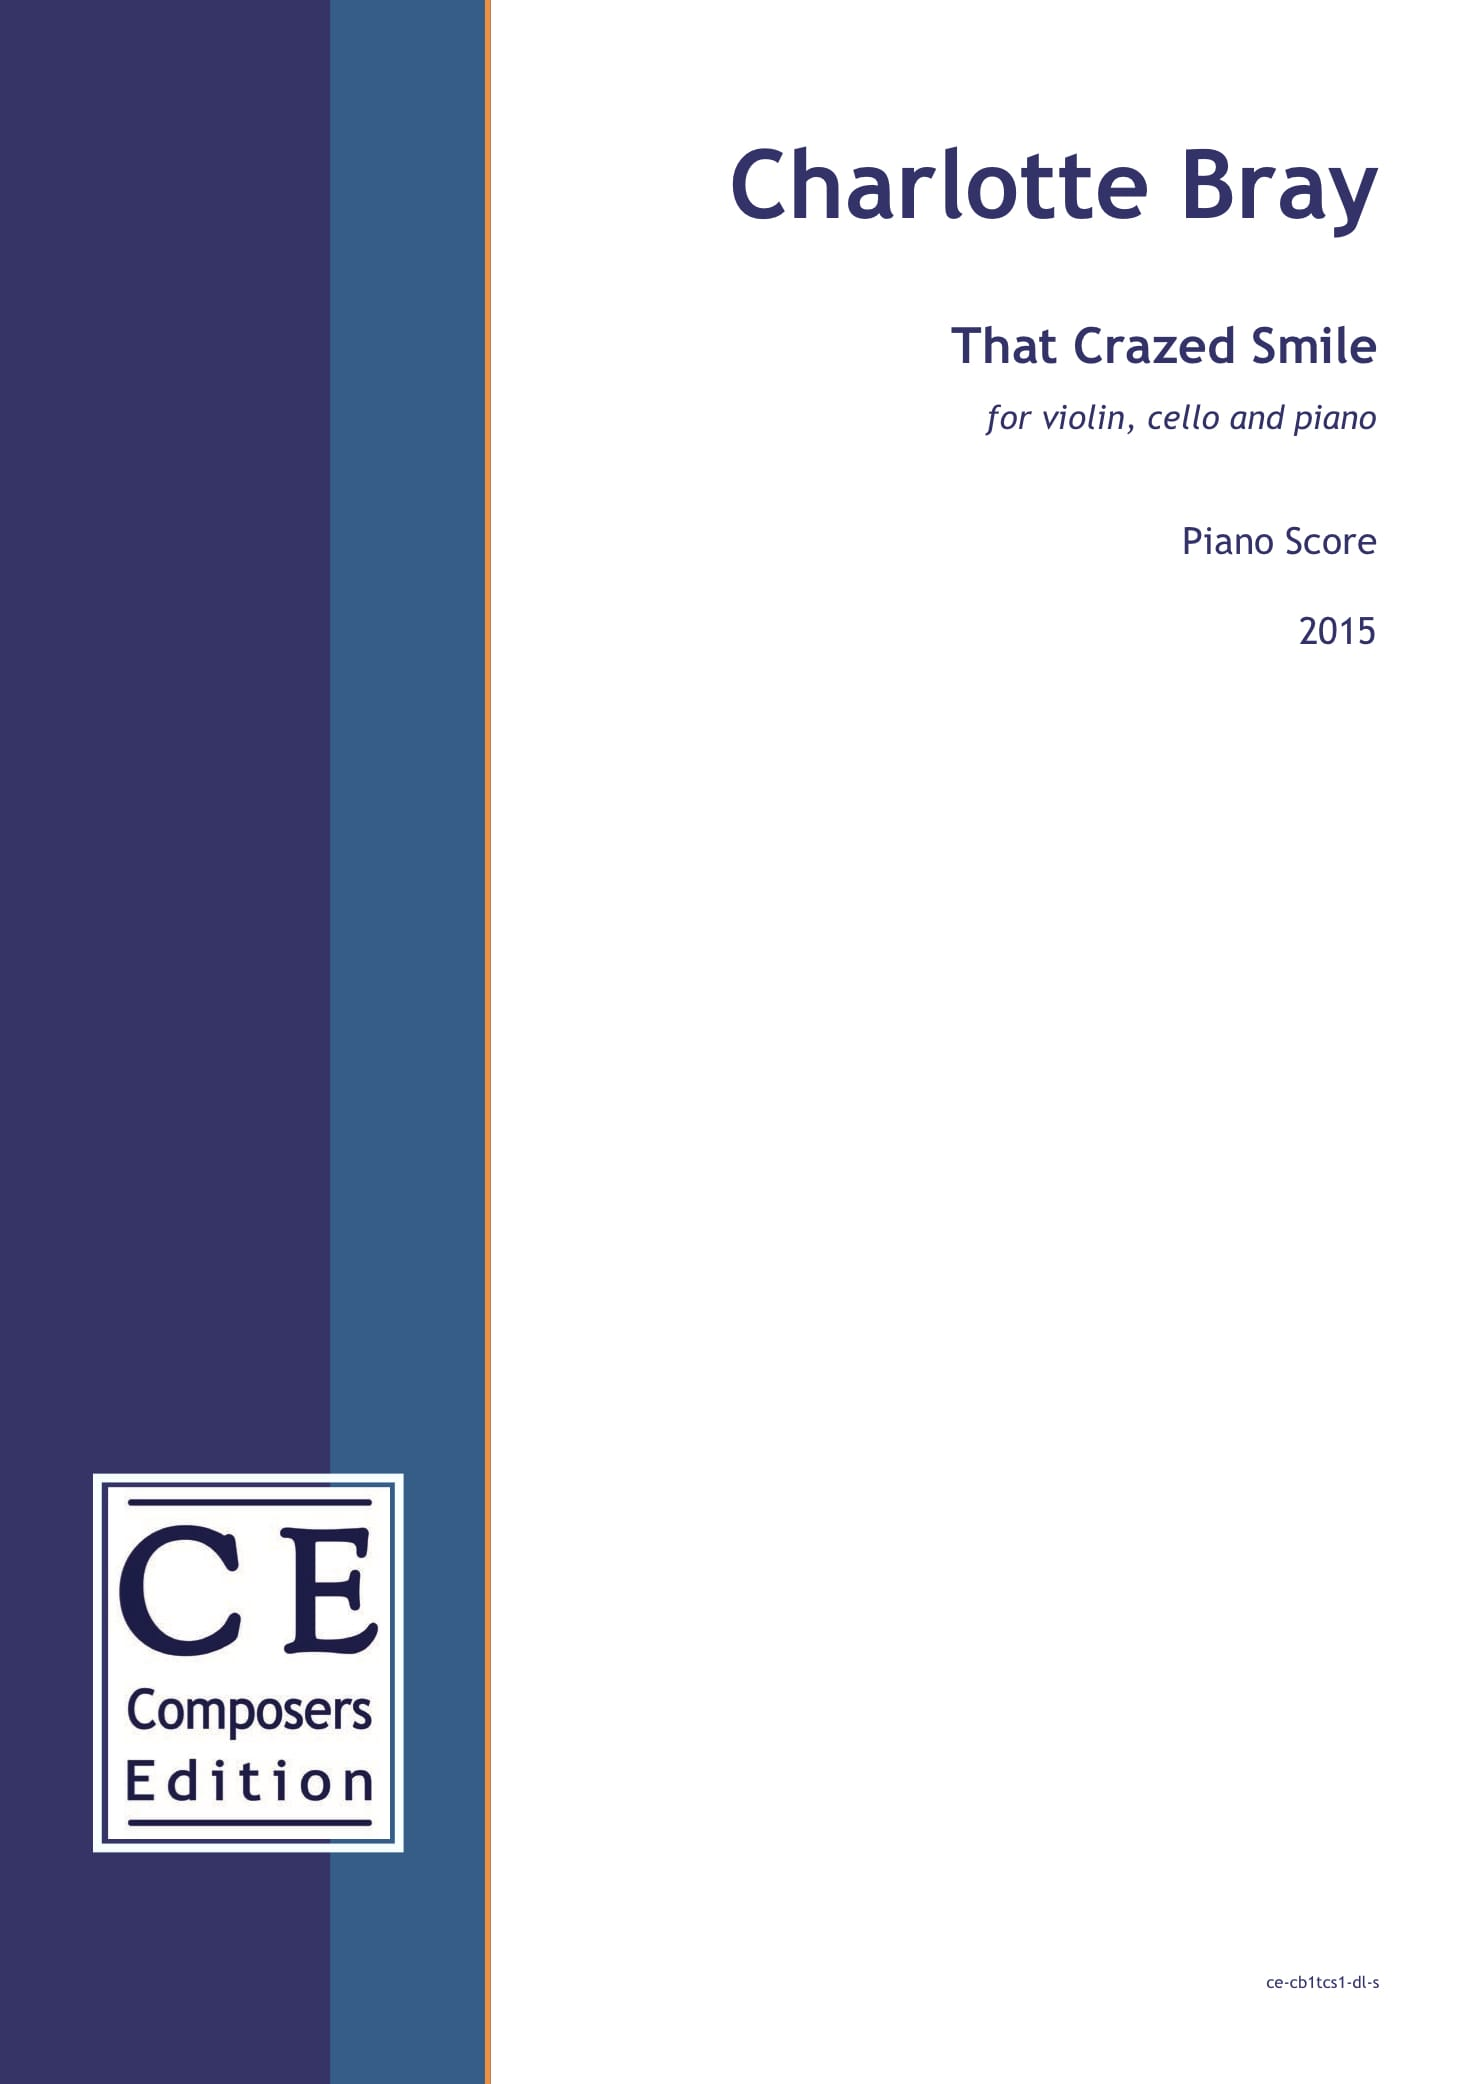 Charlotte Bray: That Crazed Smile for violin, cello and piano